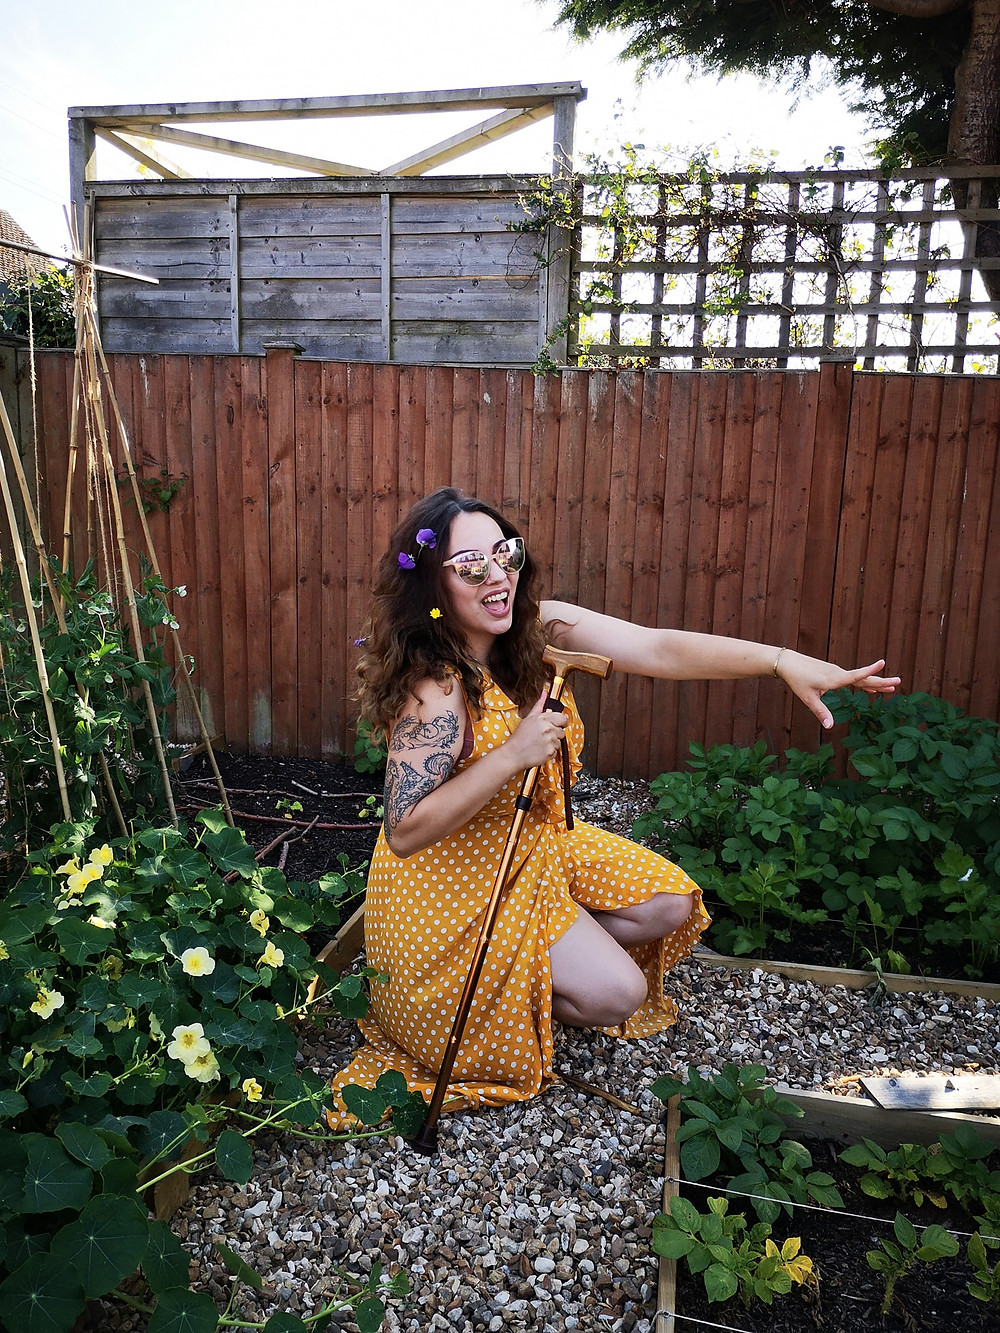 Sarah is crouching in a yellow polka dot dress, sunglasses, and sweetpeas in her curly hair, smiling and leaning on a walking stick surrounded by peas growing up canes, nasturtiums and potato plants.